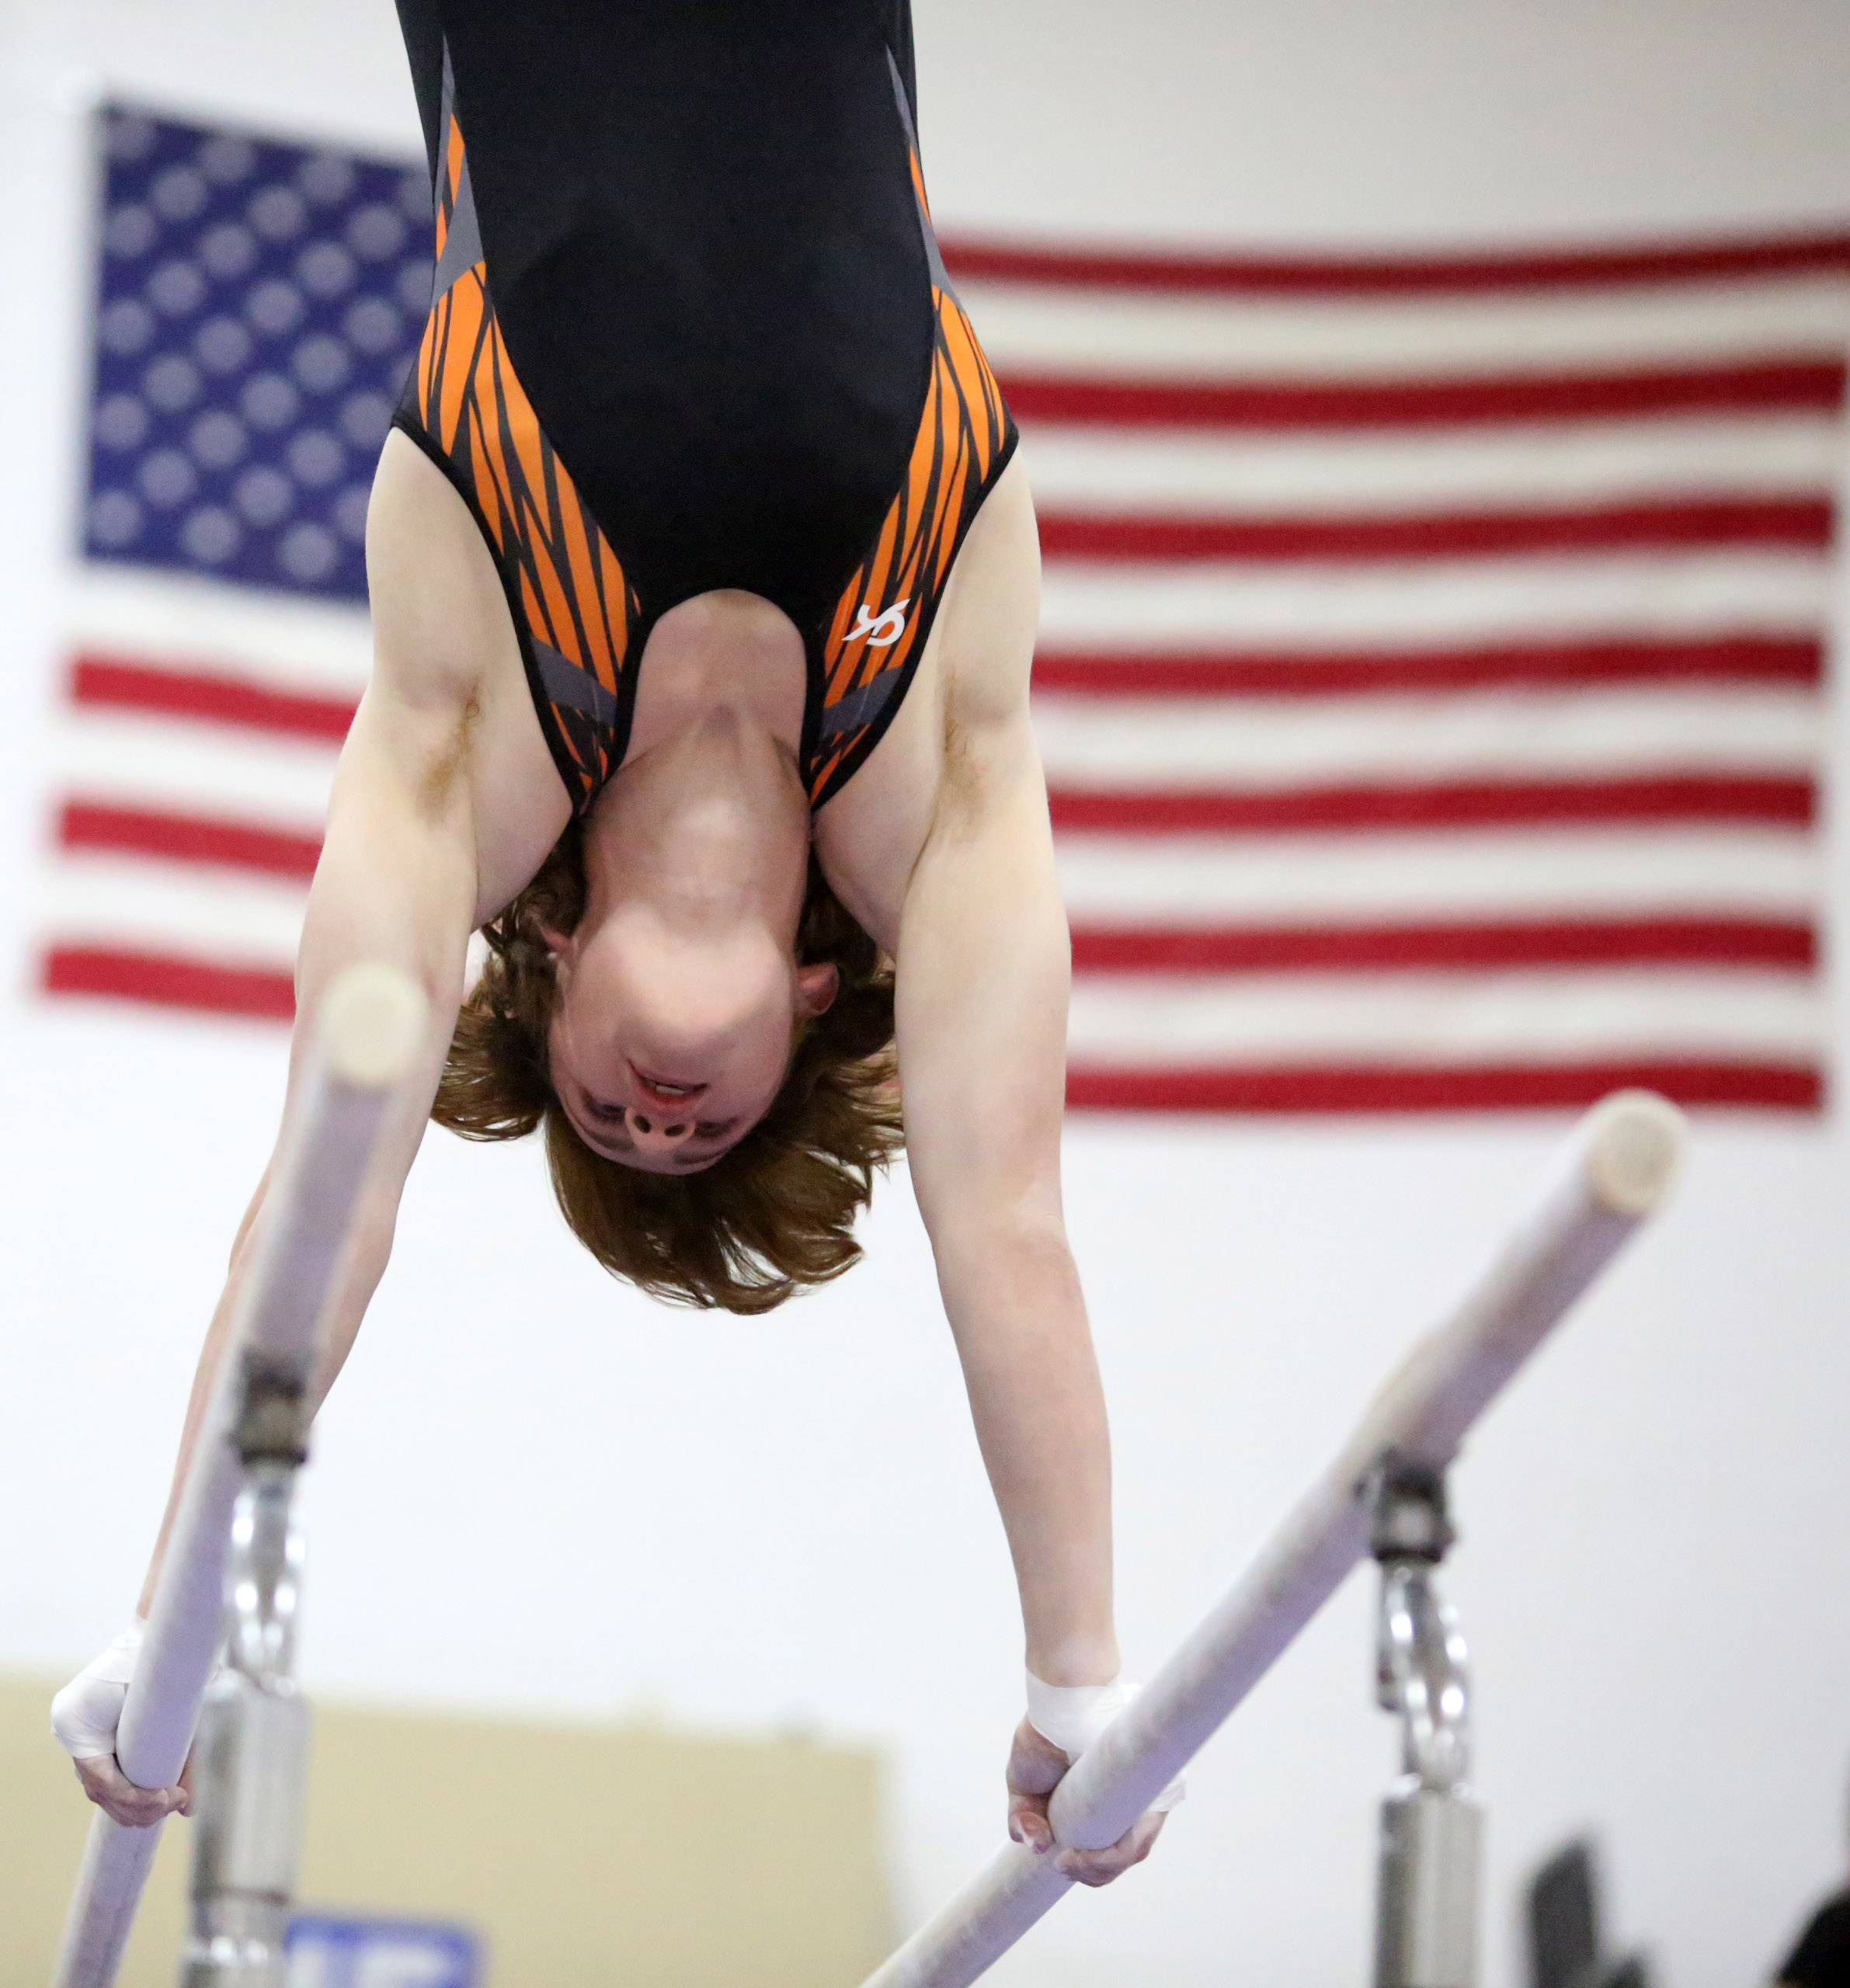 Libertyville's Ben Reichert on the parallel bars at Conant on Thursday in Hoffman Estates.